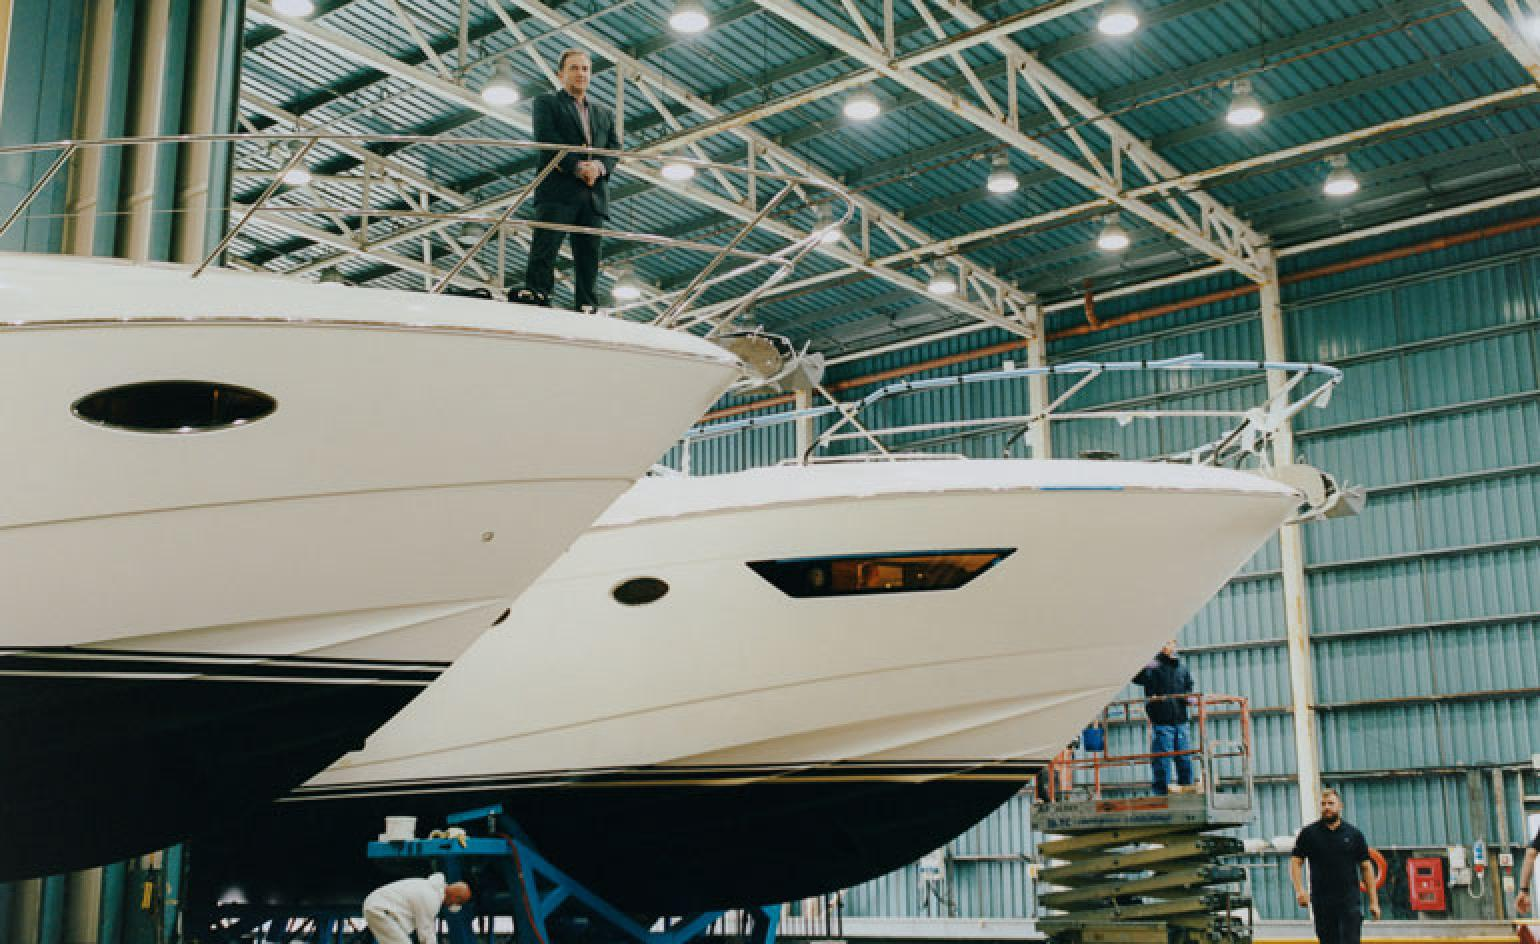 Rising Tide Princess Yachts Takes Luxury To A New Level Wallpaper